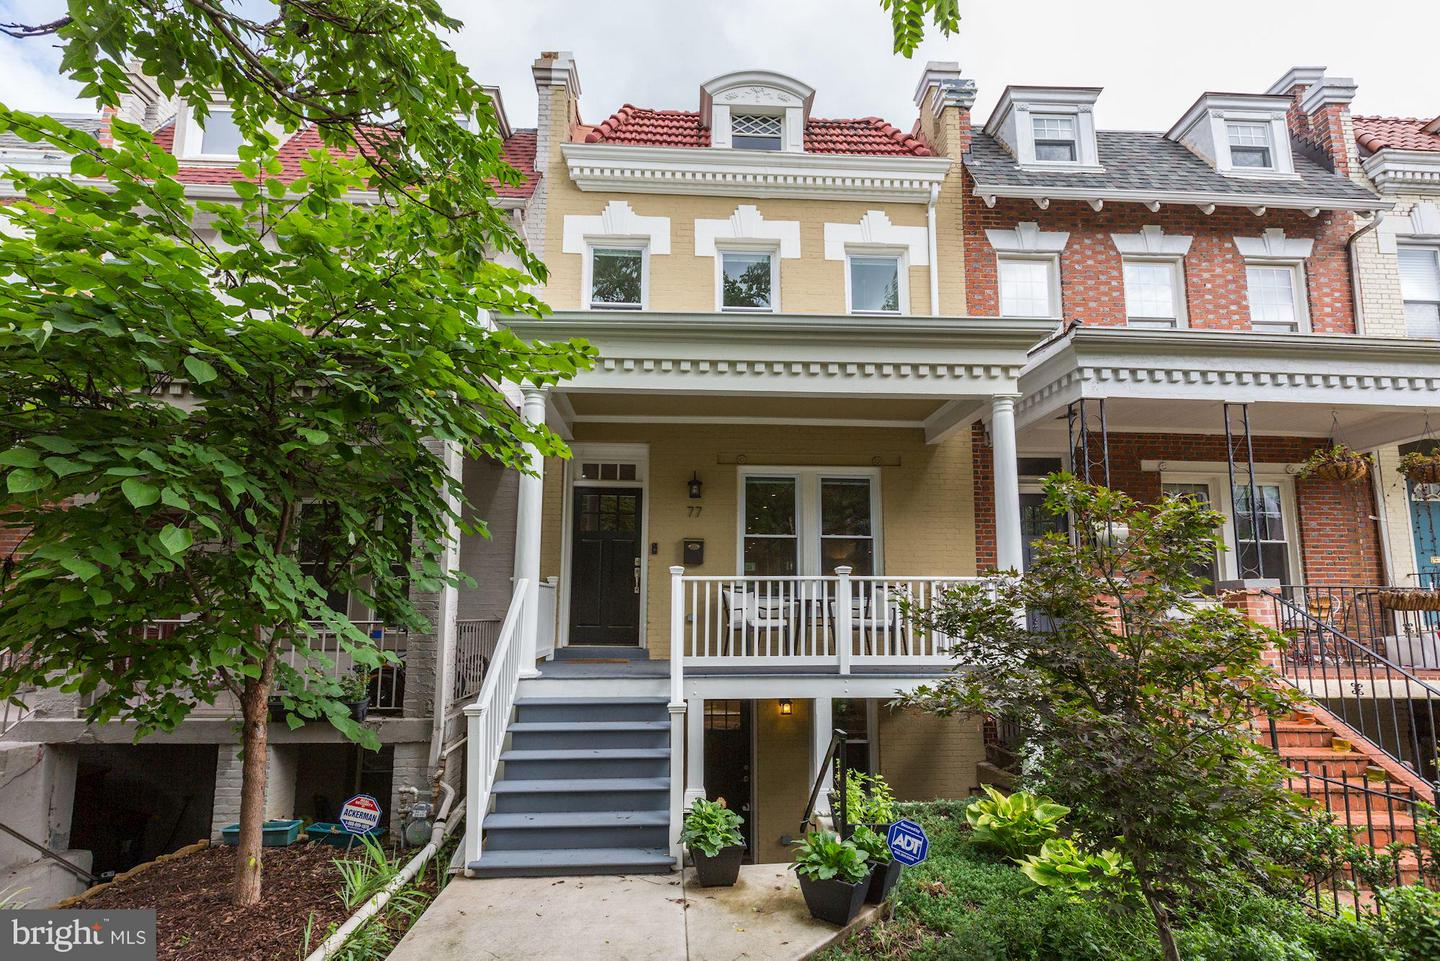 77 V STREET NW, WASHINGTON, District of Columbia